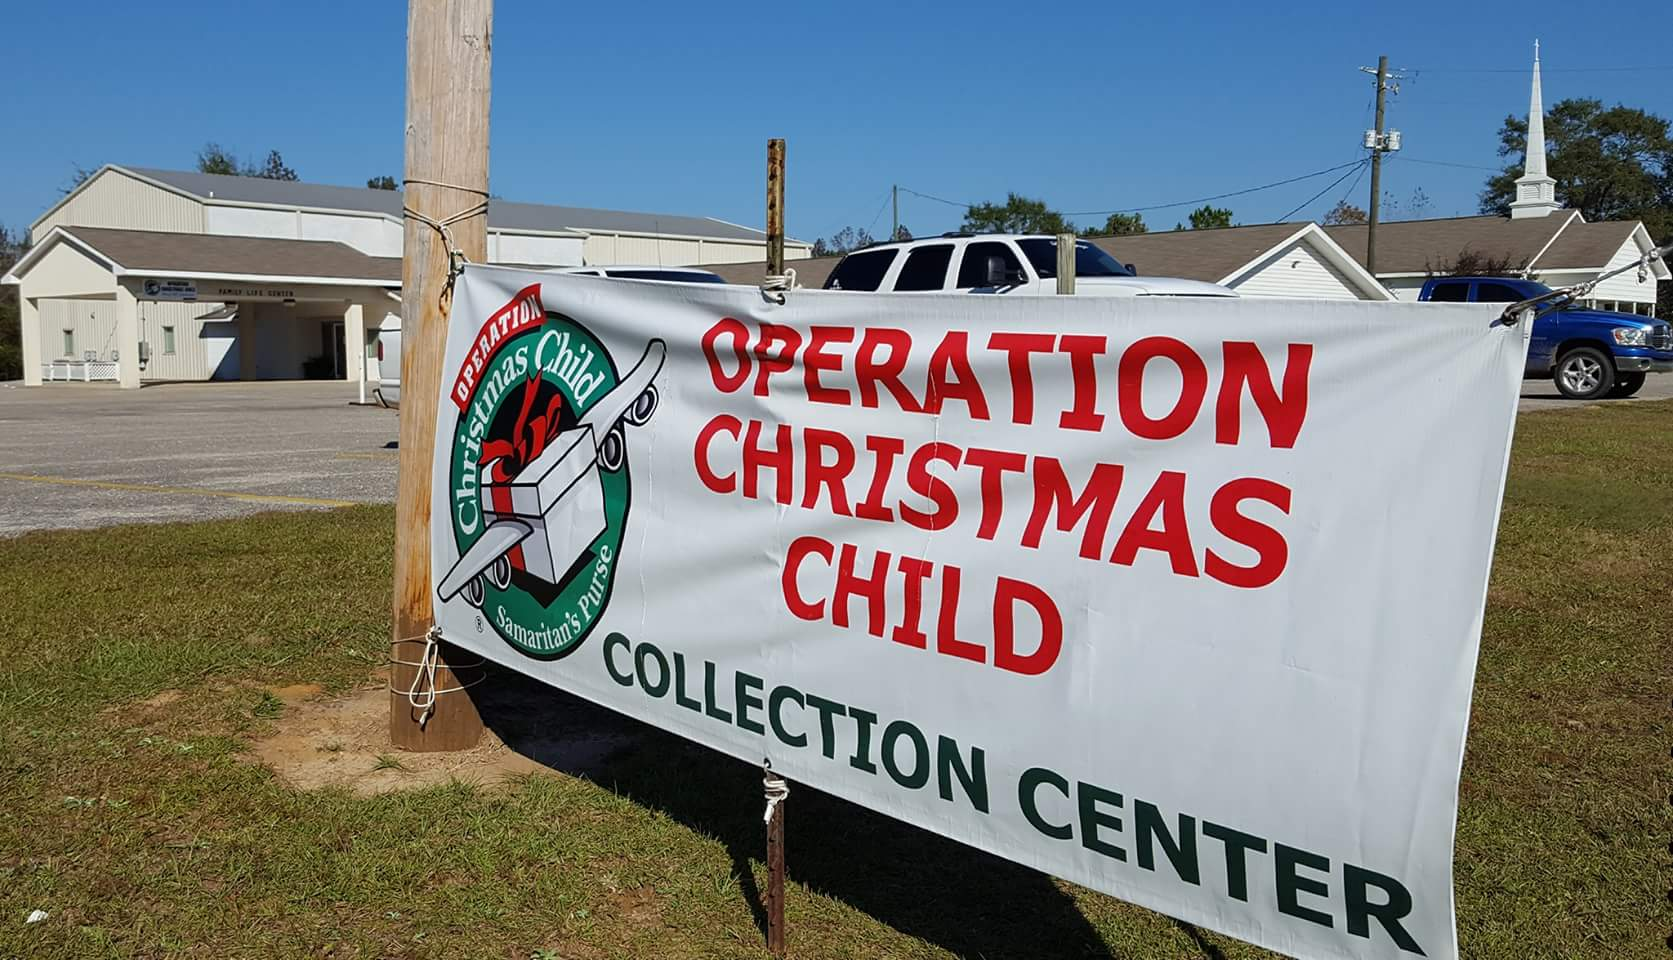 Operation Christmas Child seeks to give 12 million gift-filled shoeboxes